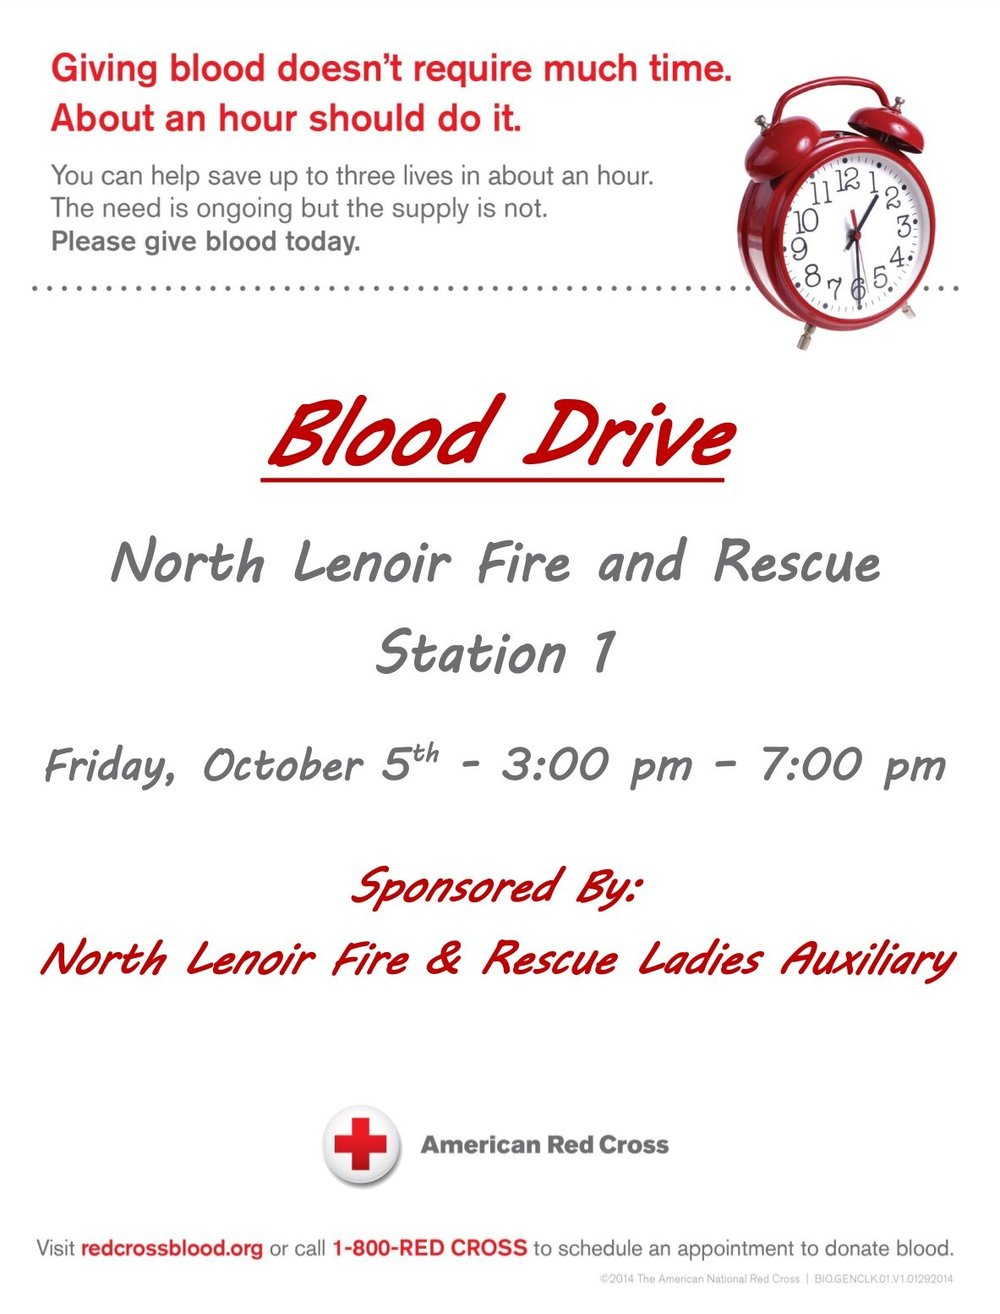 Red Cross Schedules Blood Drive For October 5th